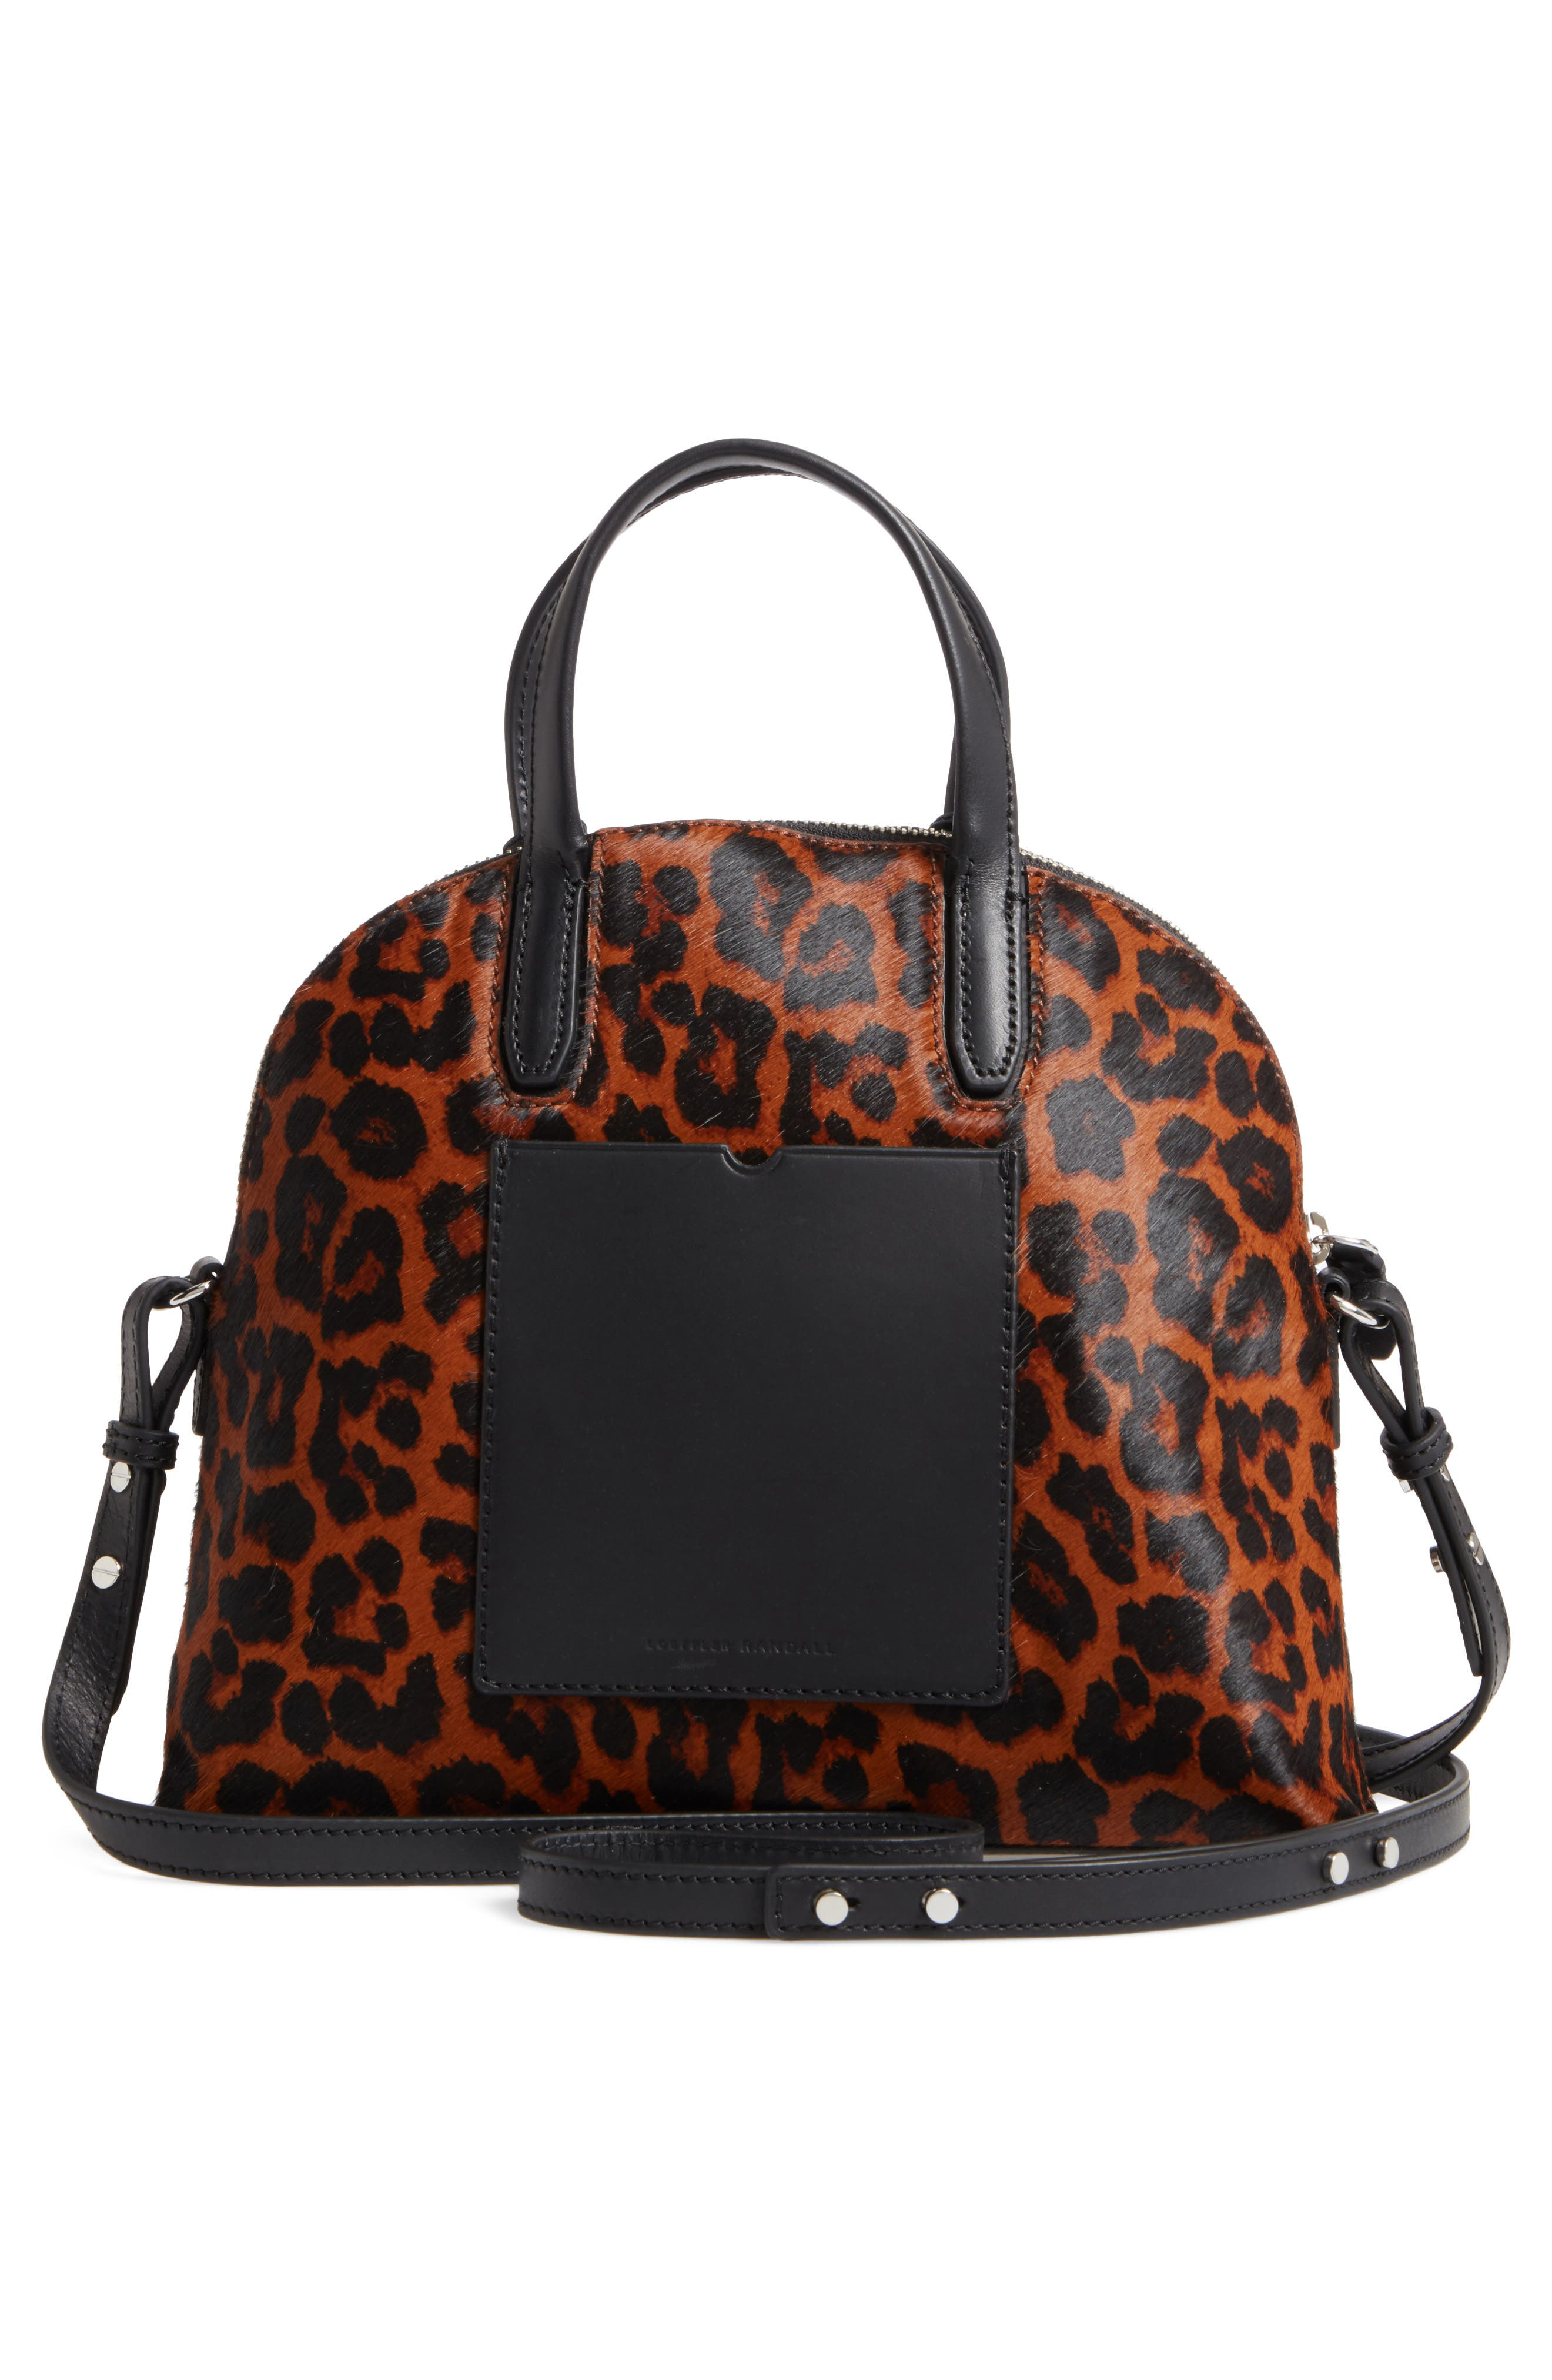 Genuine Calf Hair Dome Satchel,                             Alternate thumbnail 3, color,                             251